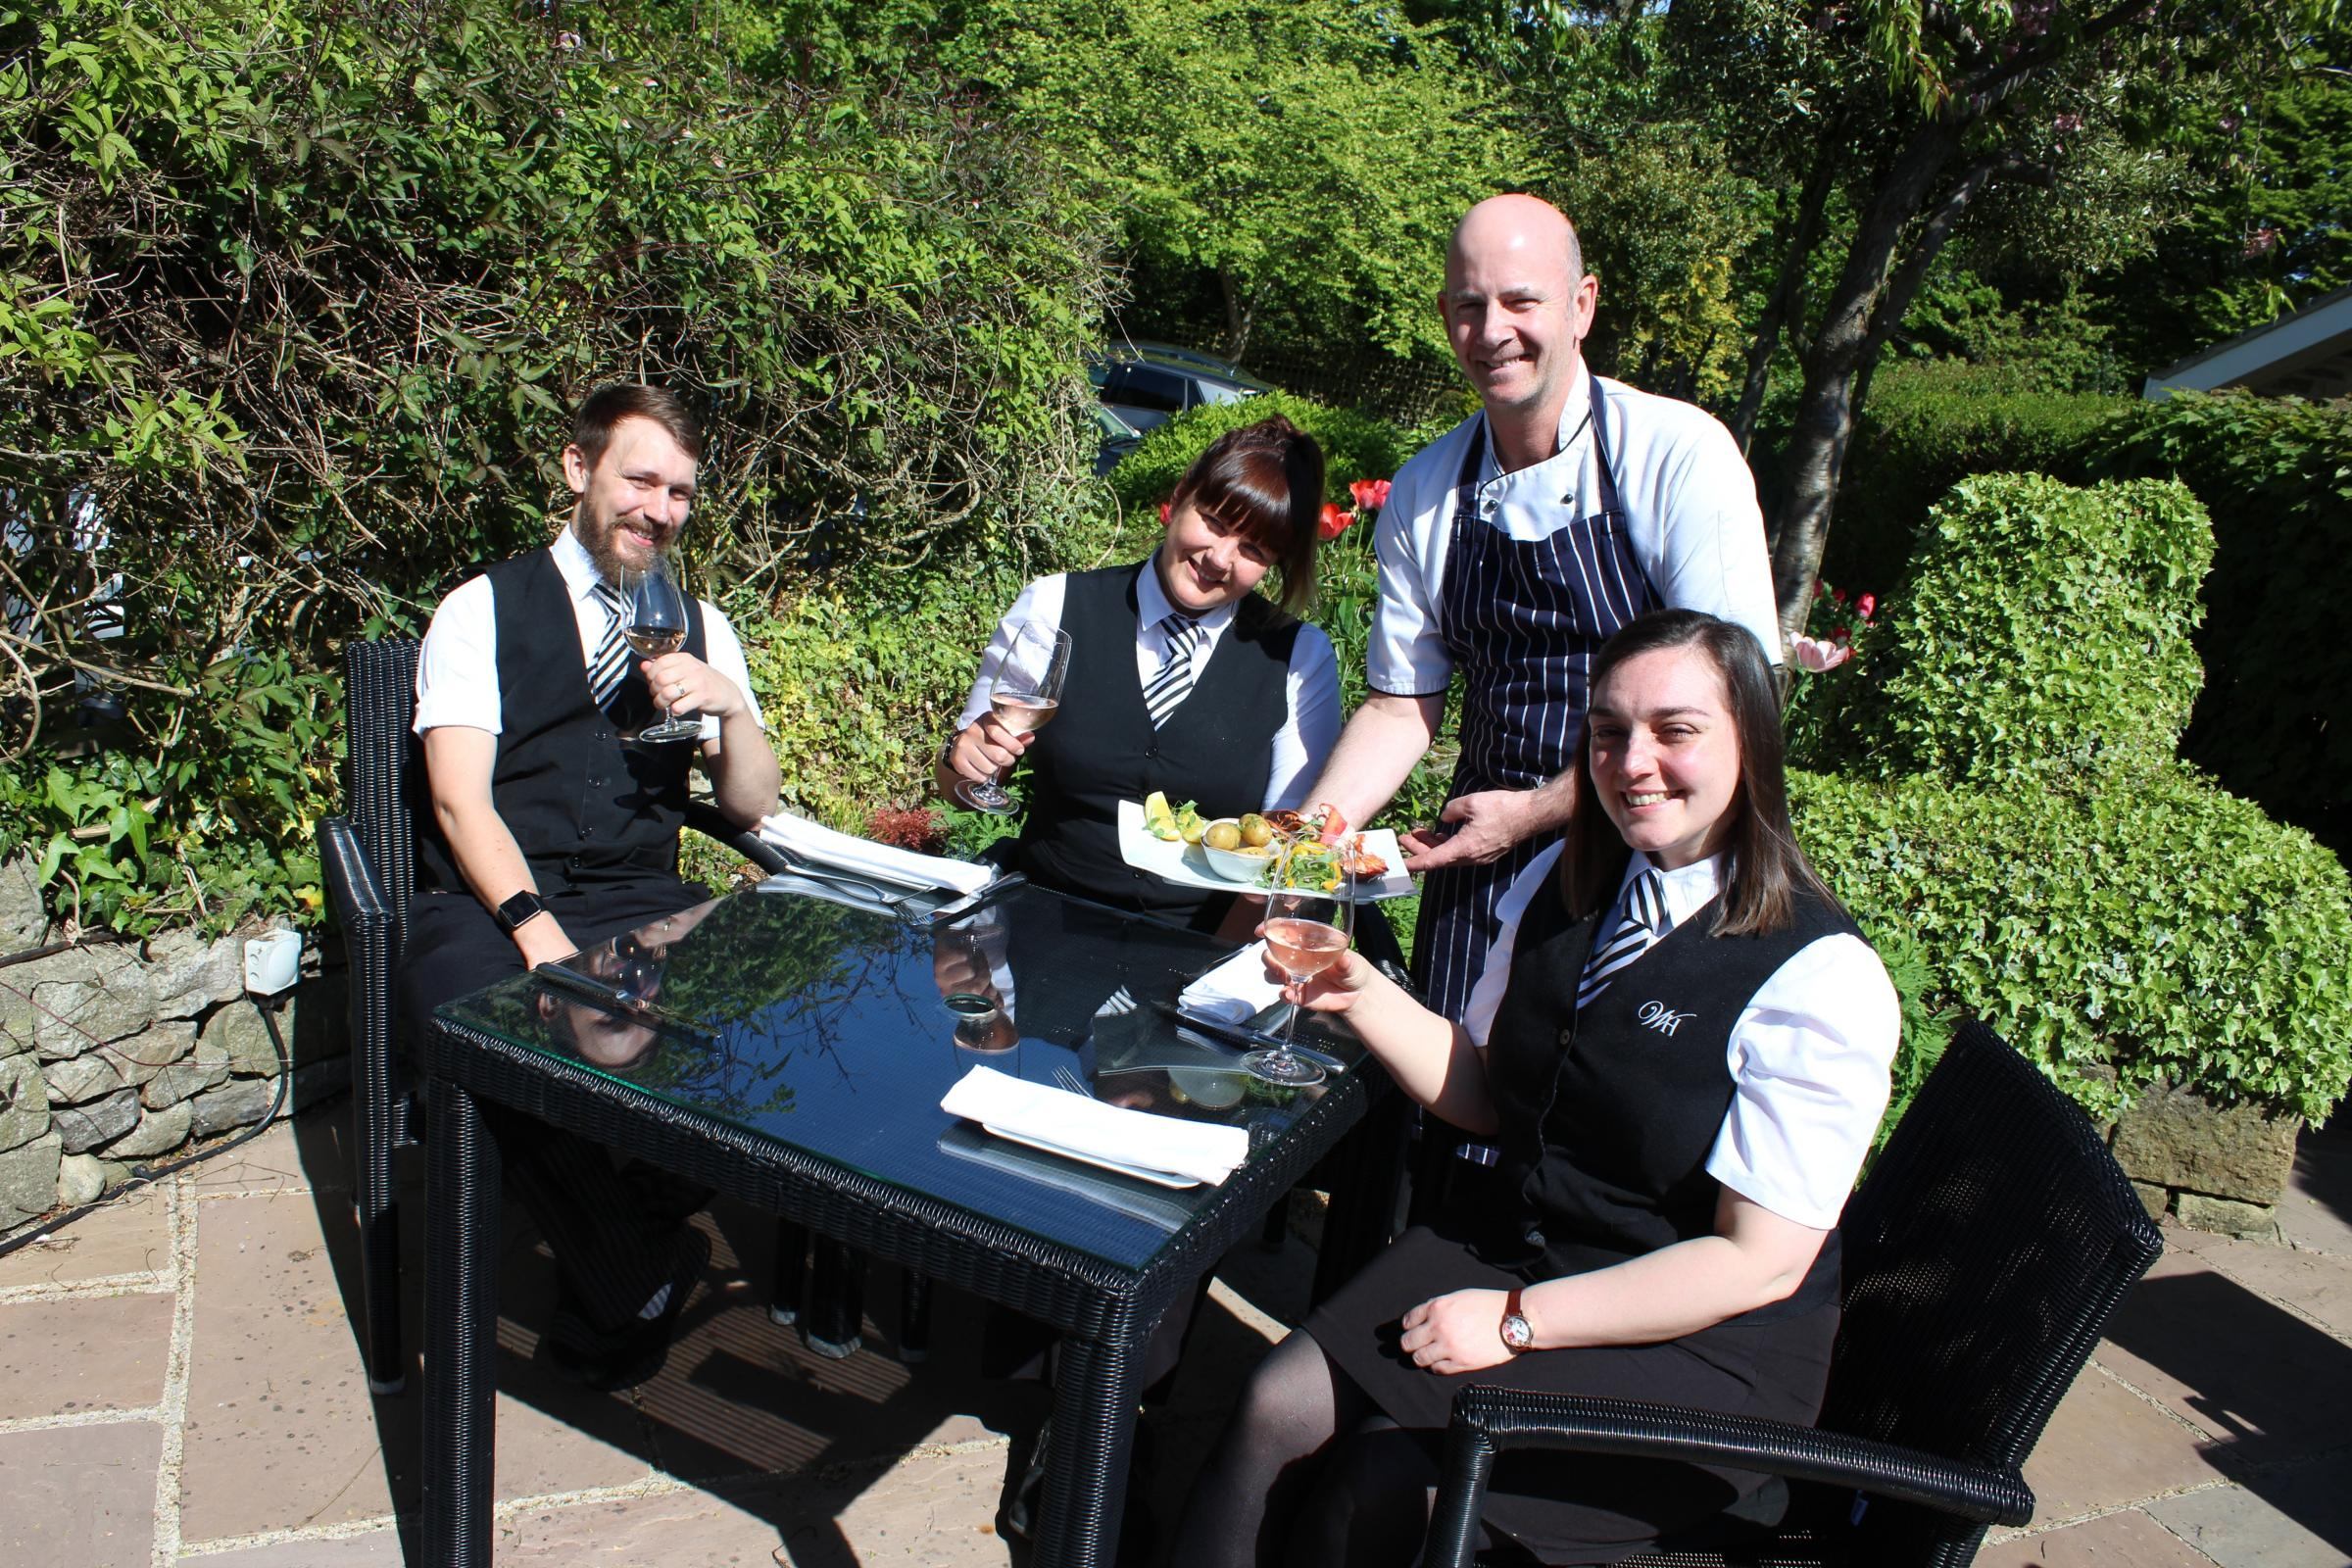 REST: Chef Graeme Moss serves waiters Alex Miles (left) Carly Thompson (middle) and Dee Smith (right).